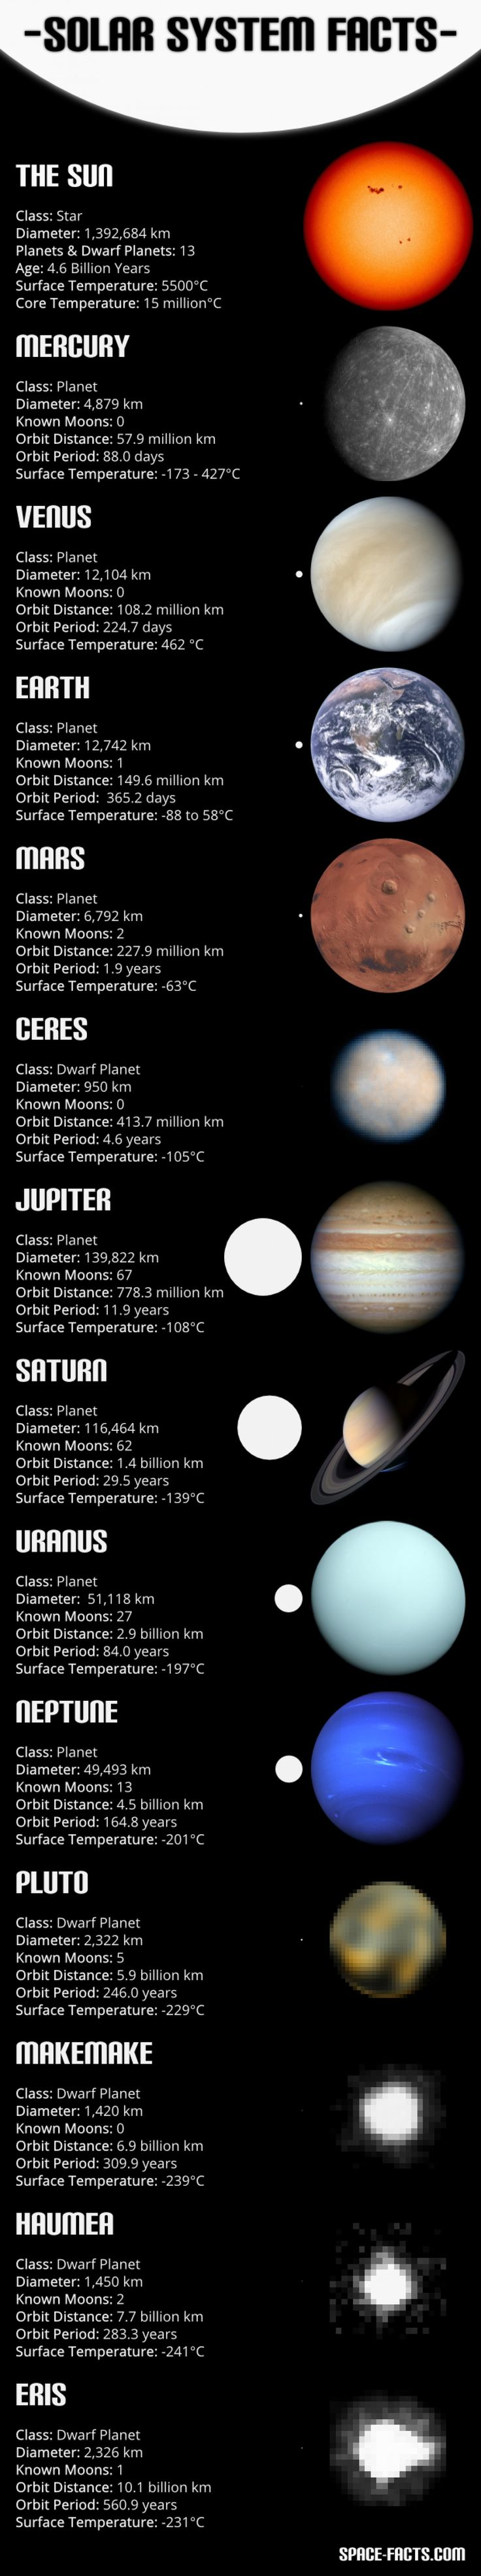 Solar System Facts Infographic - clean, clear, and bright. Could be printed and used for poster in classroom.